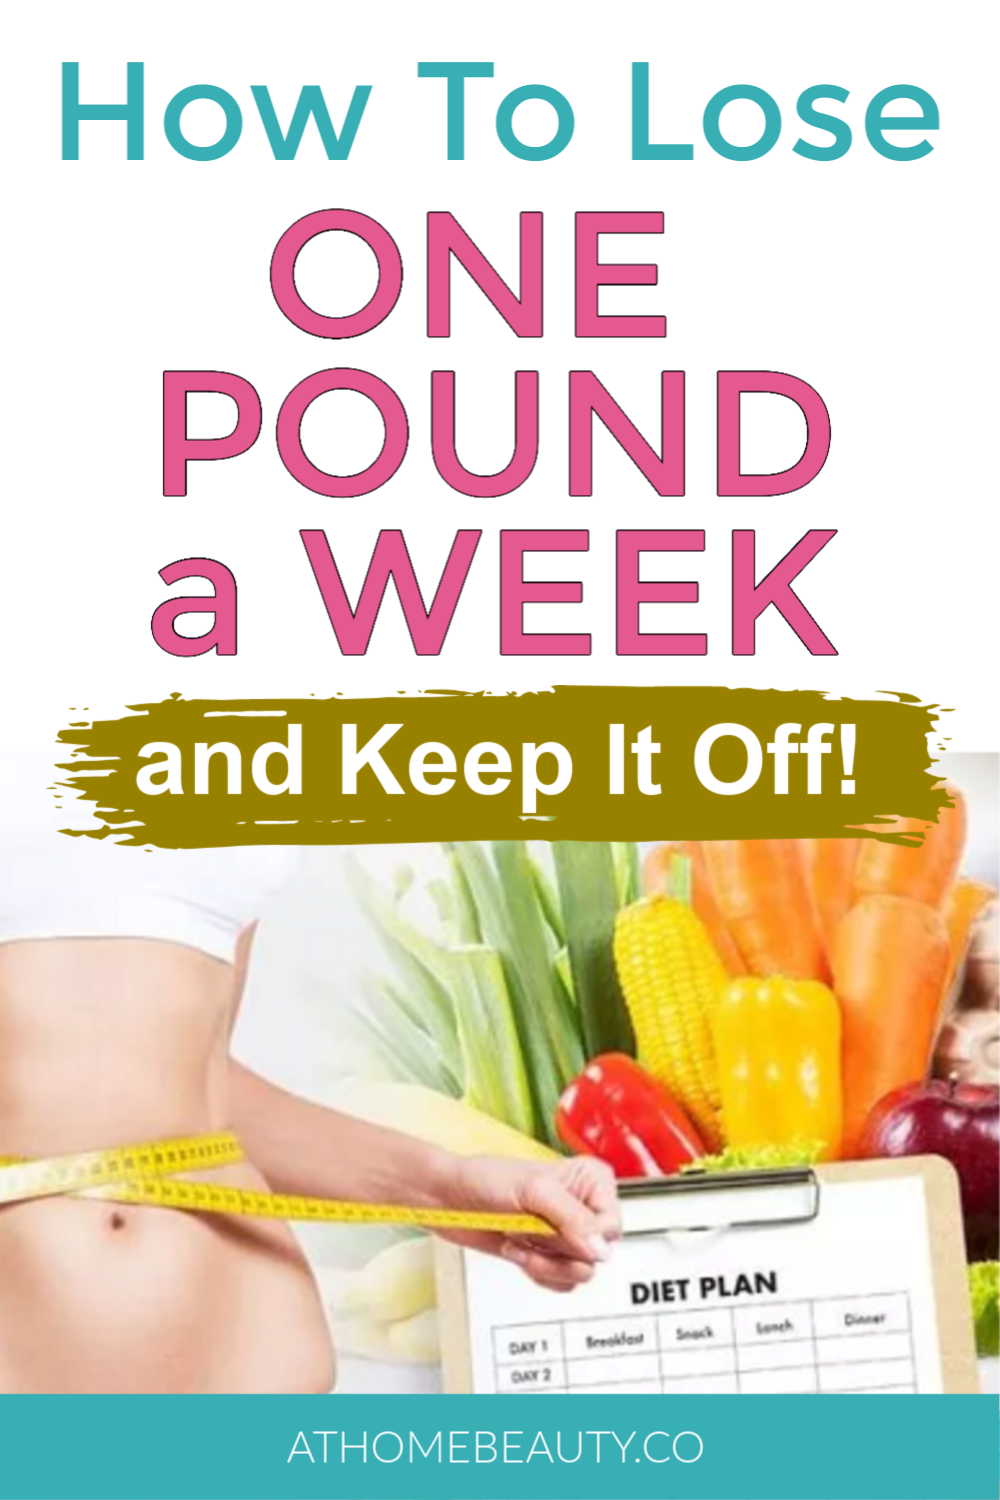 How To Lose a Pound a Week